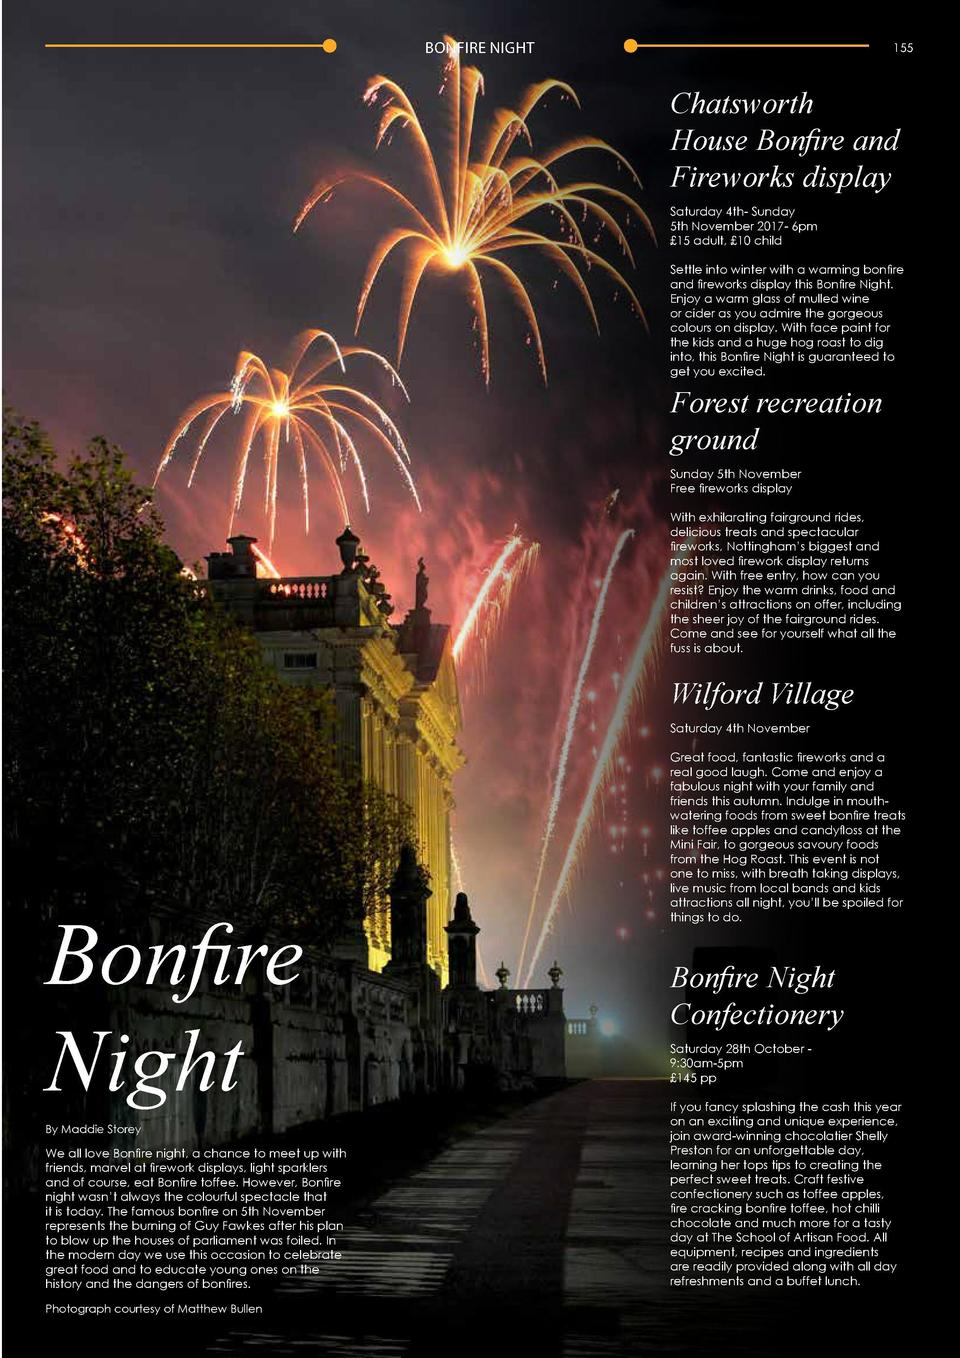 154  BONFIRE NIGHT  BONFIRE NIGHT  155  Chatsworth House Bonfire and Fireworks display Saturday 4th- Sunday 5th November 2...